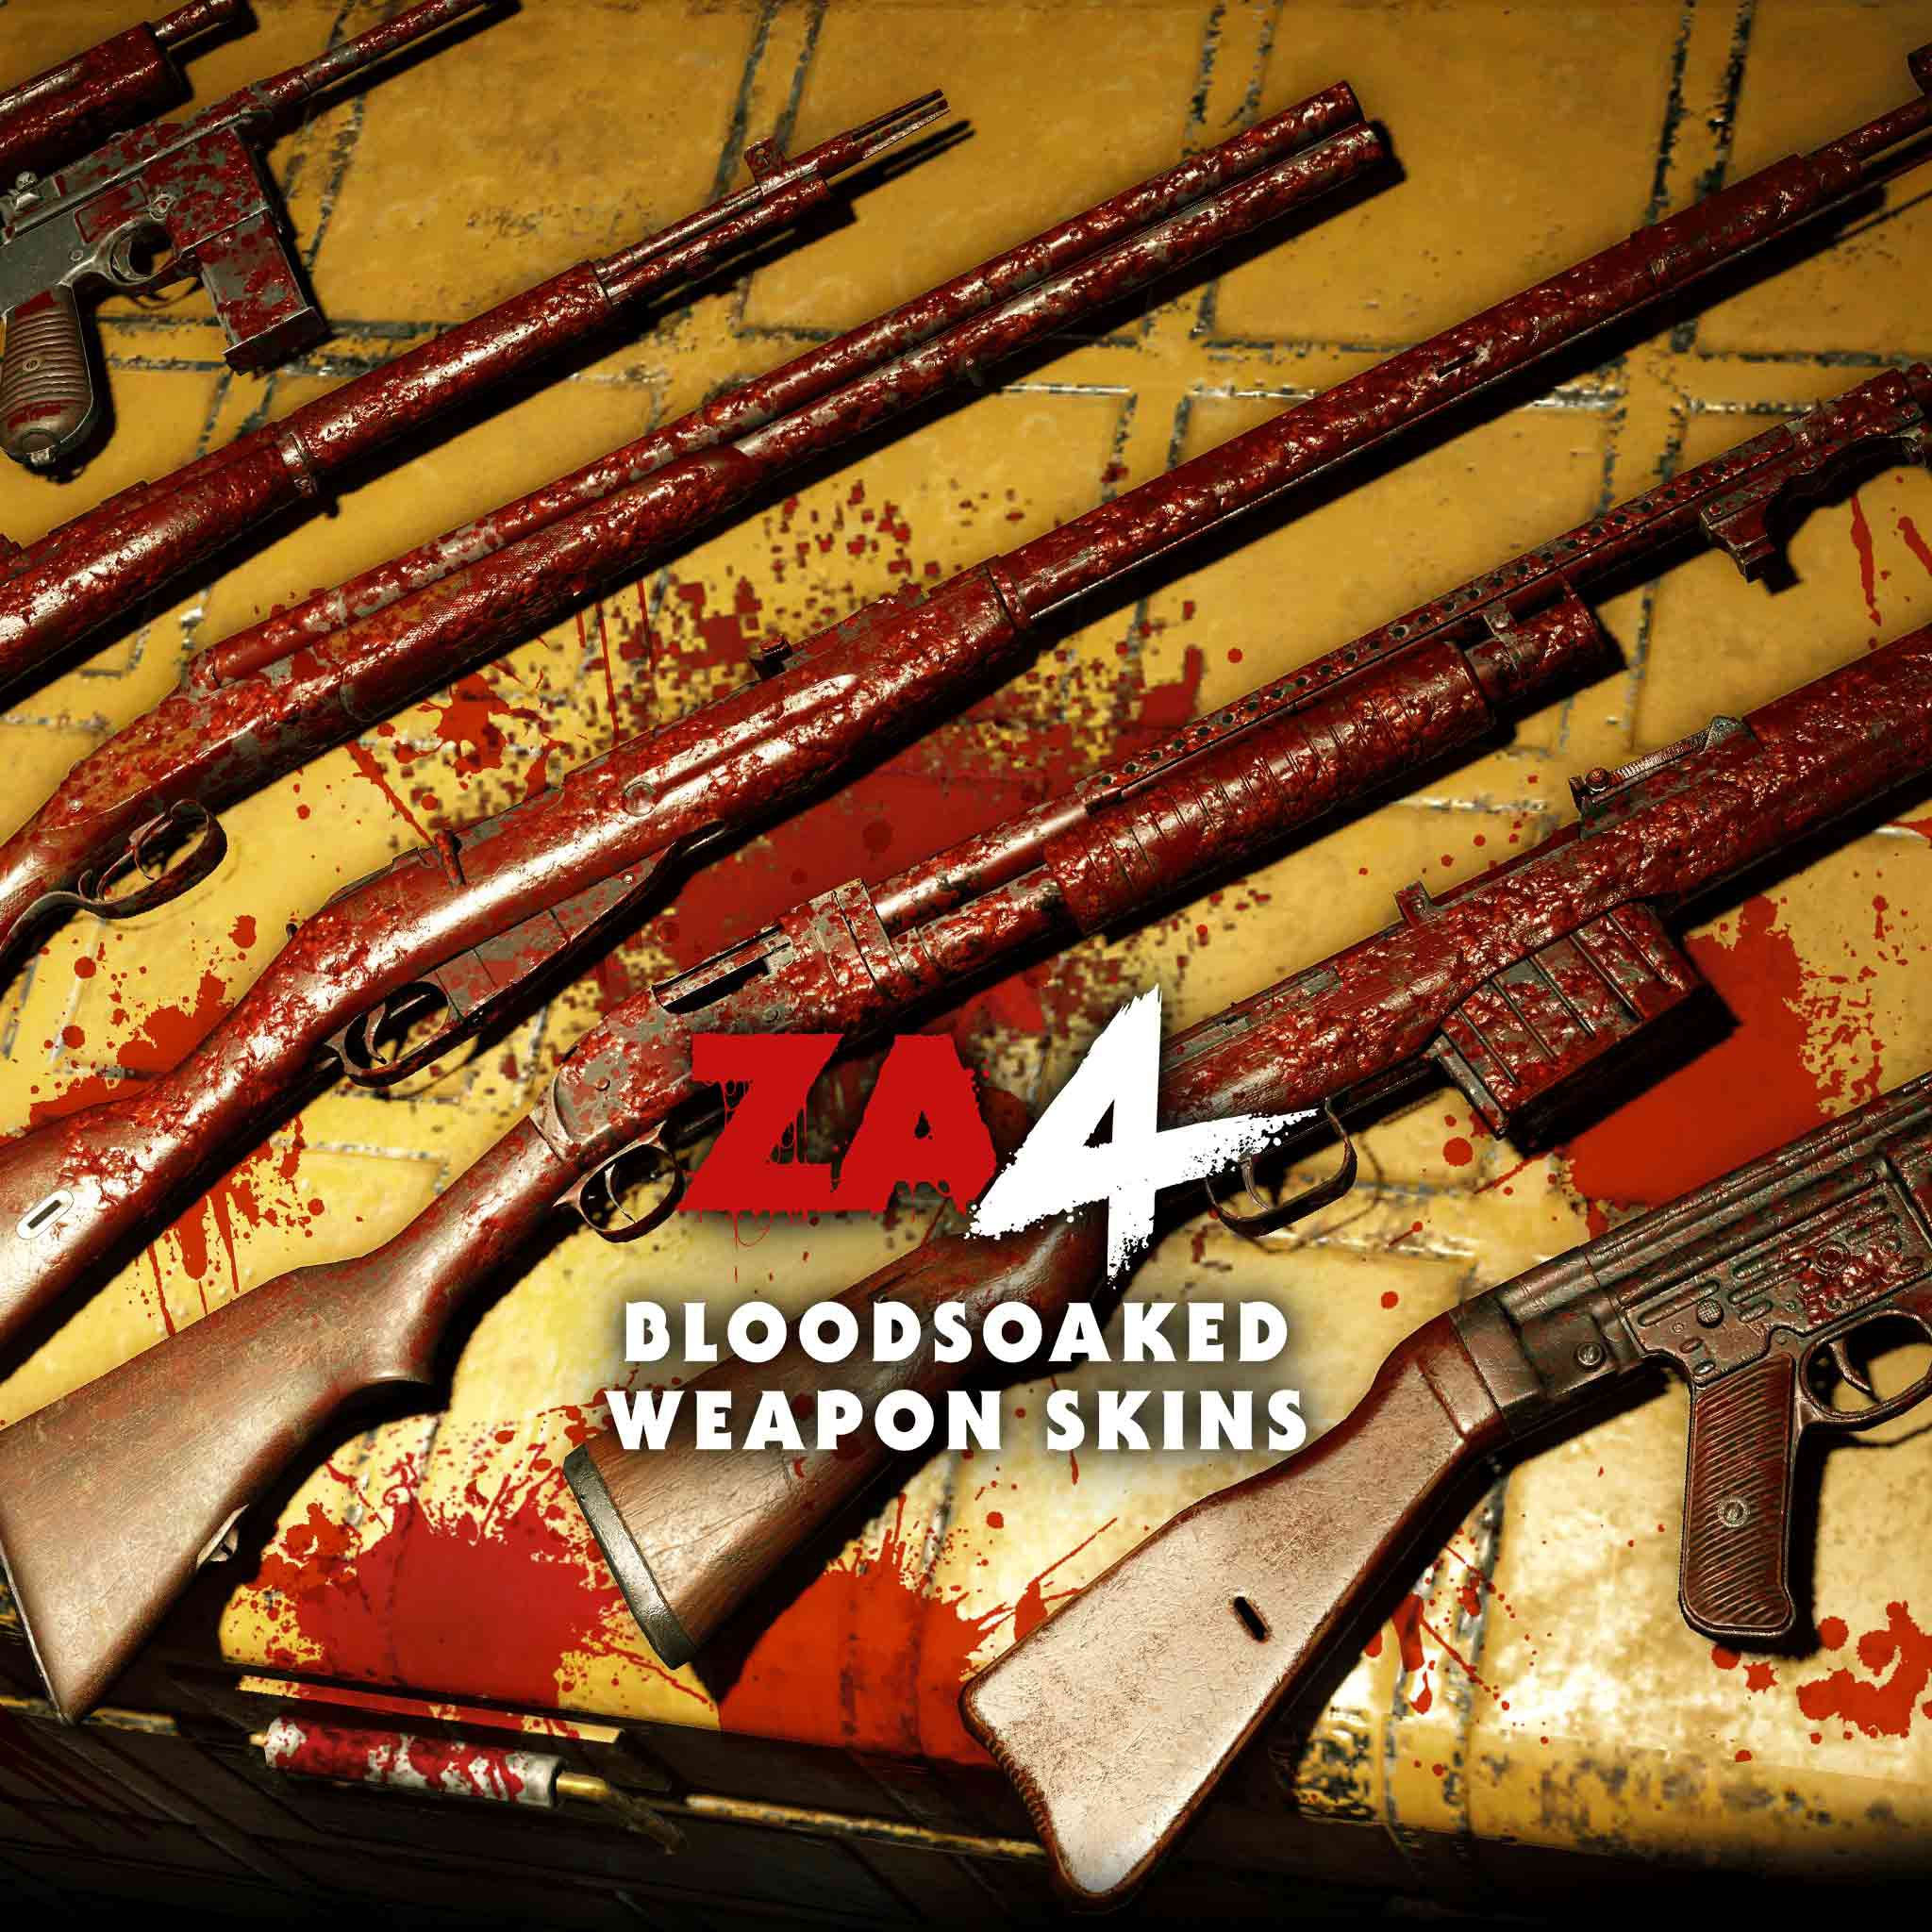 Zombie Army 4: Bloodsoaked Weapon Skins